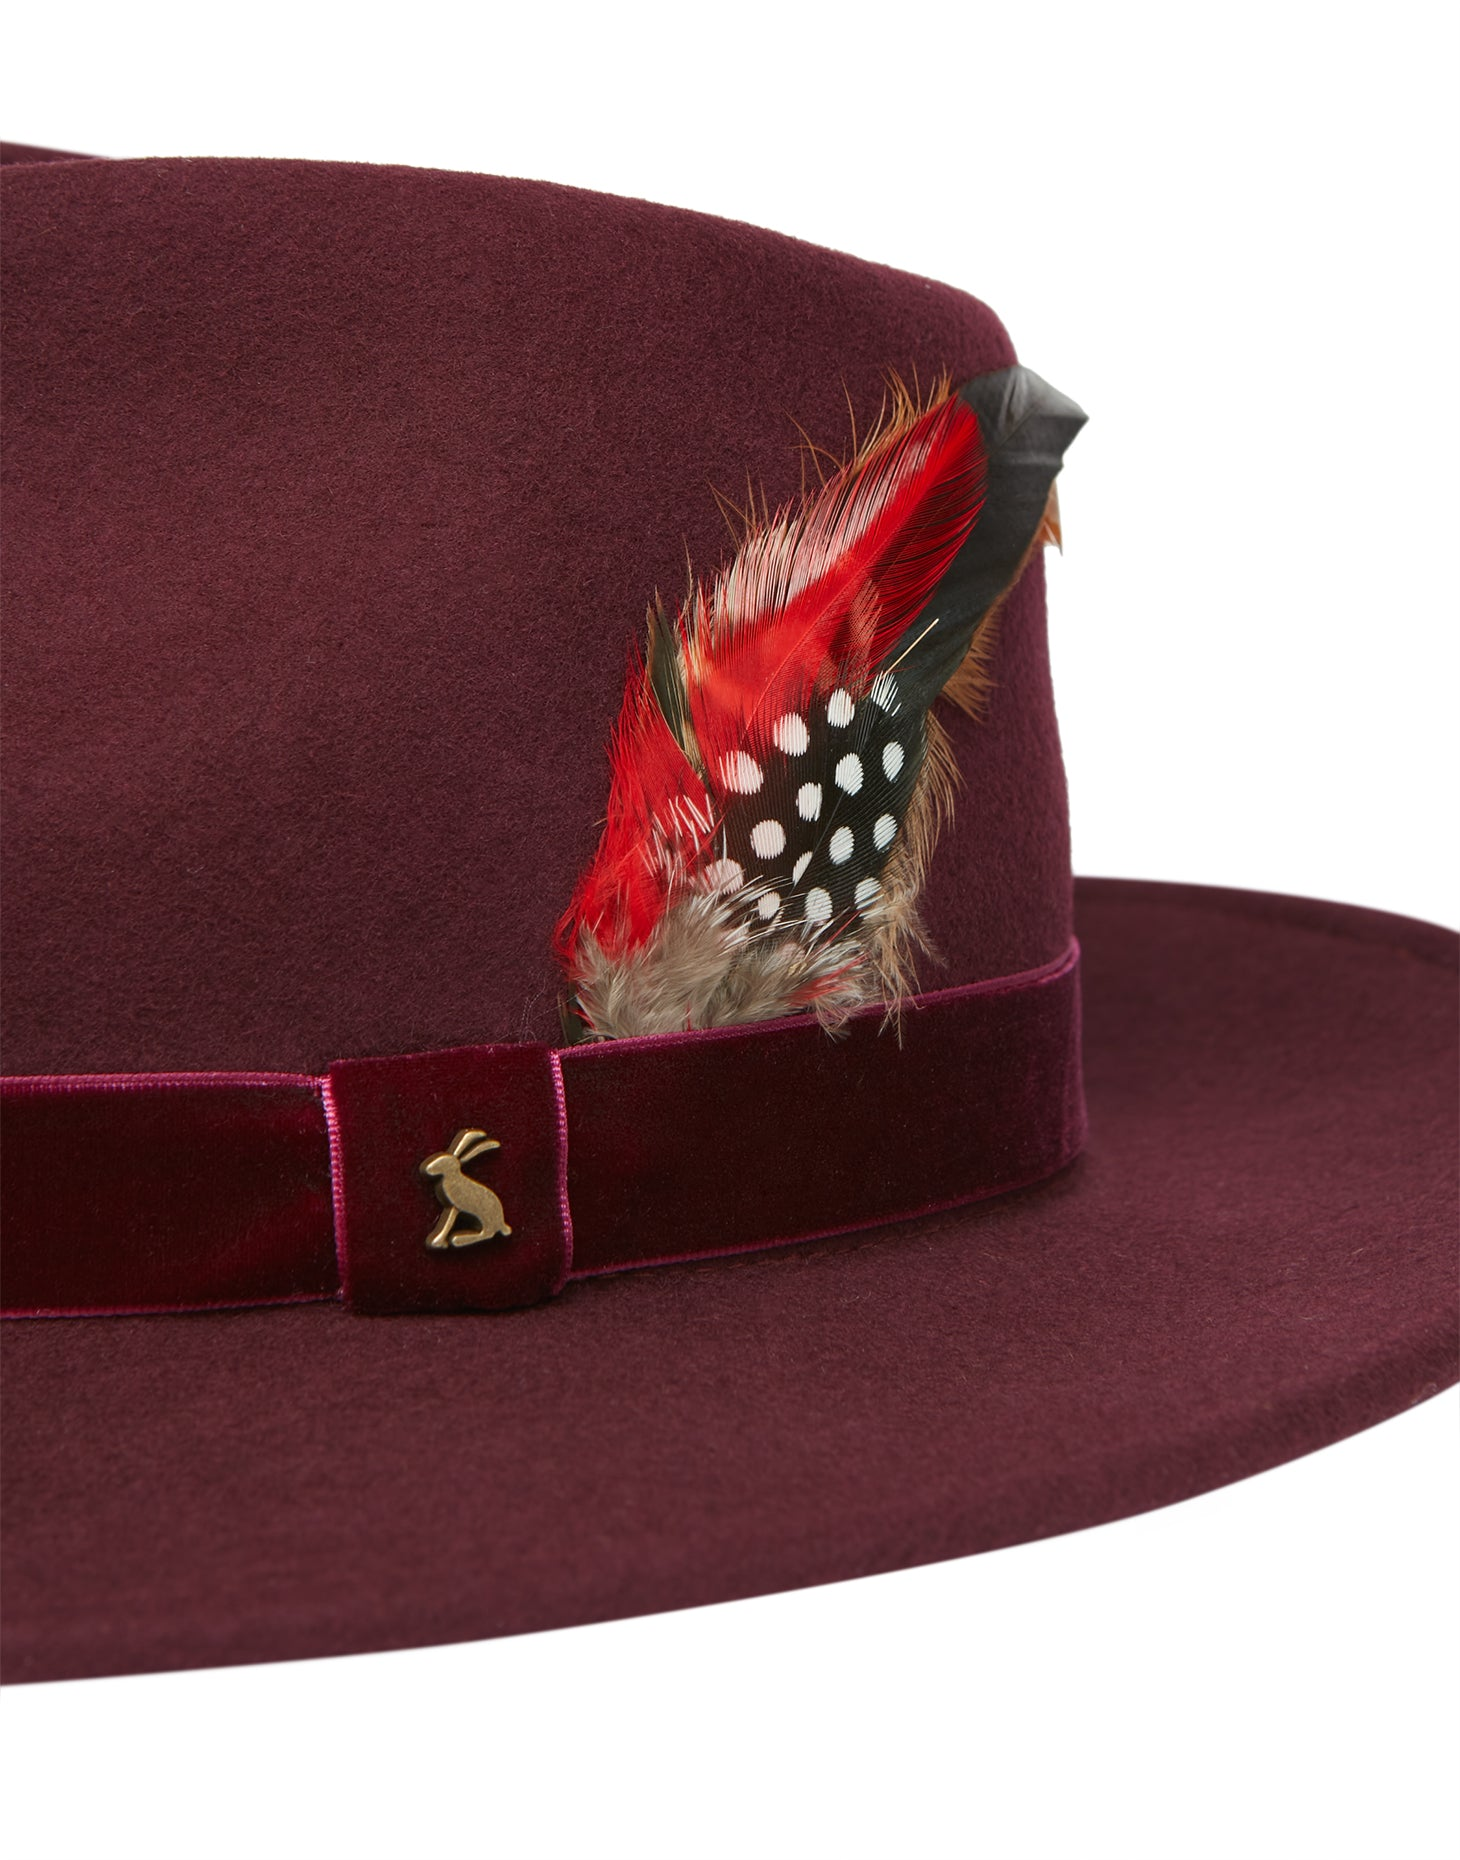 Joules Fedora Felt Hat for Ladies in Oxblood